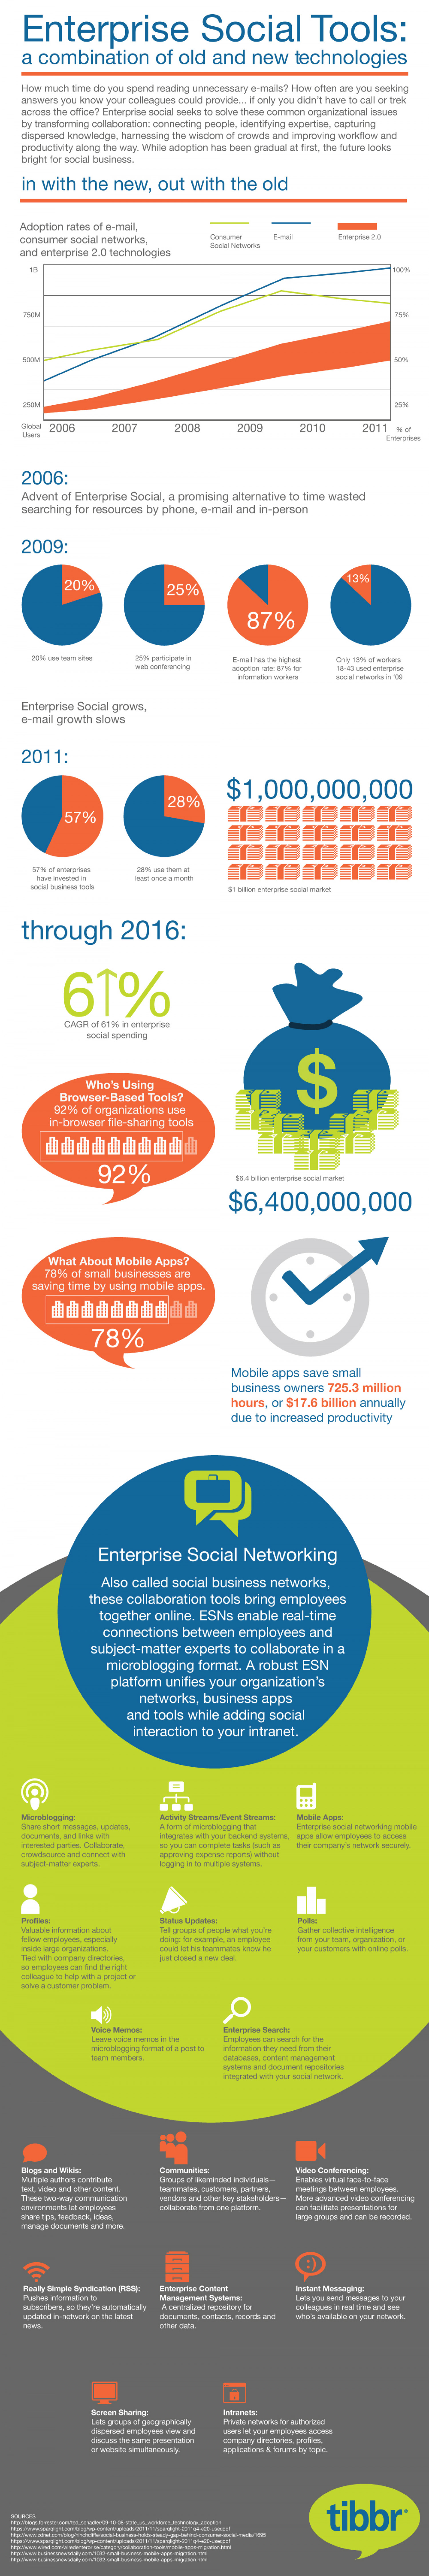 Enterprise Social Networking, A Combination of Old and New Technology Infographic